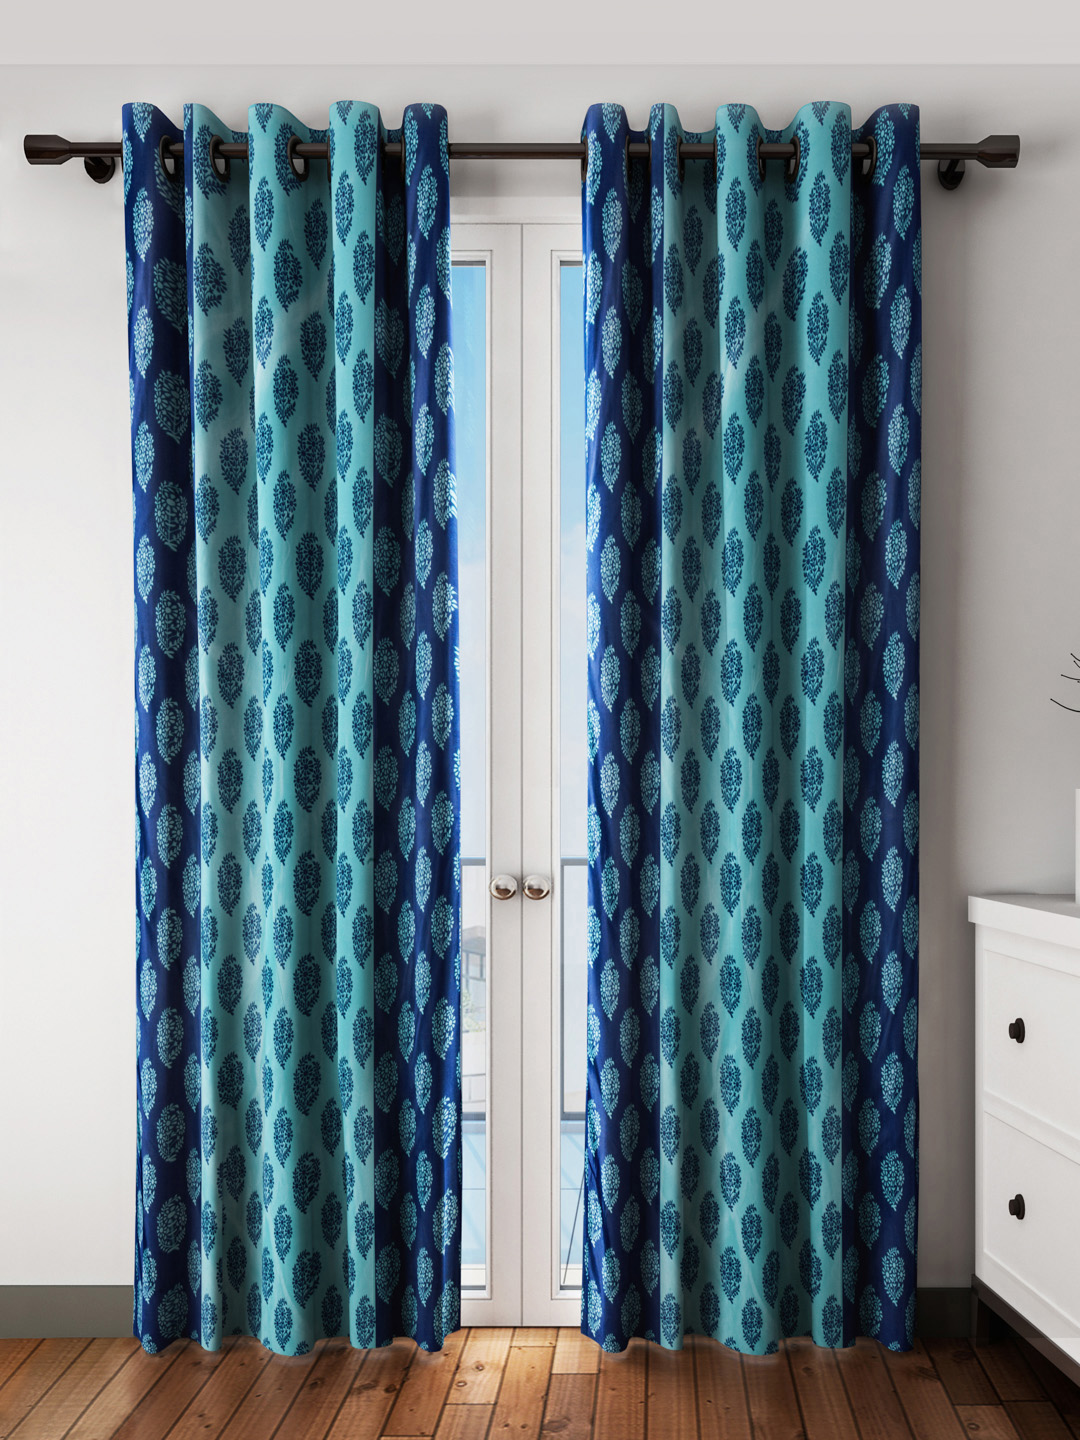 How To Hold Curtains Back Install A Curtain Double Rod Air